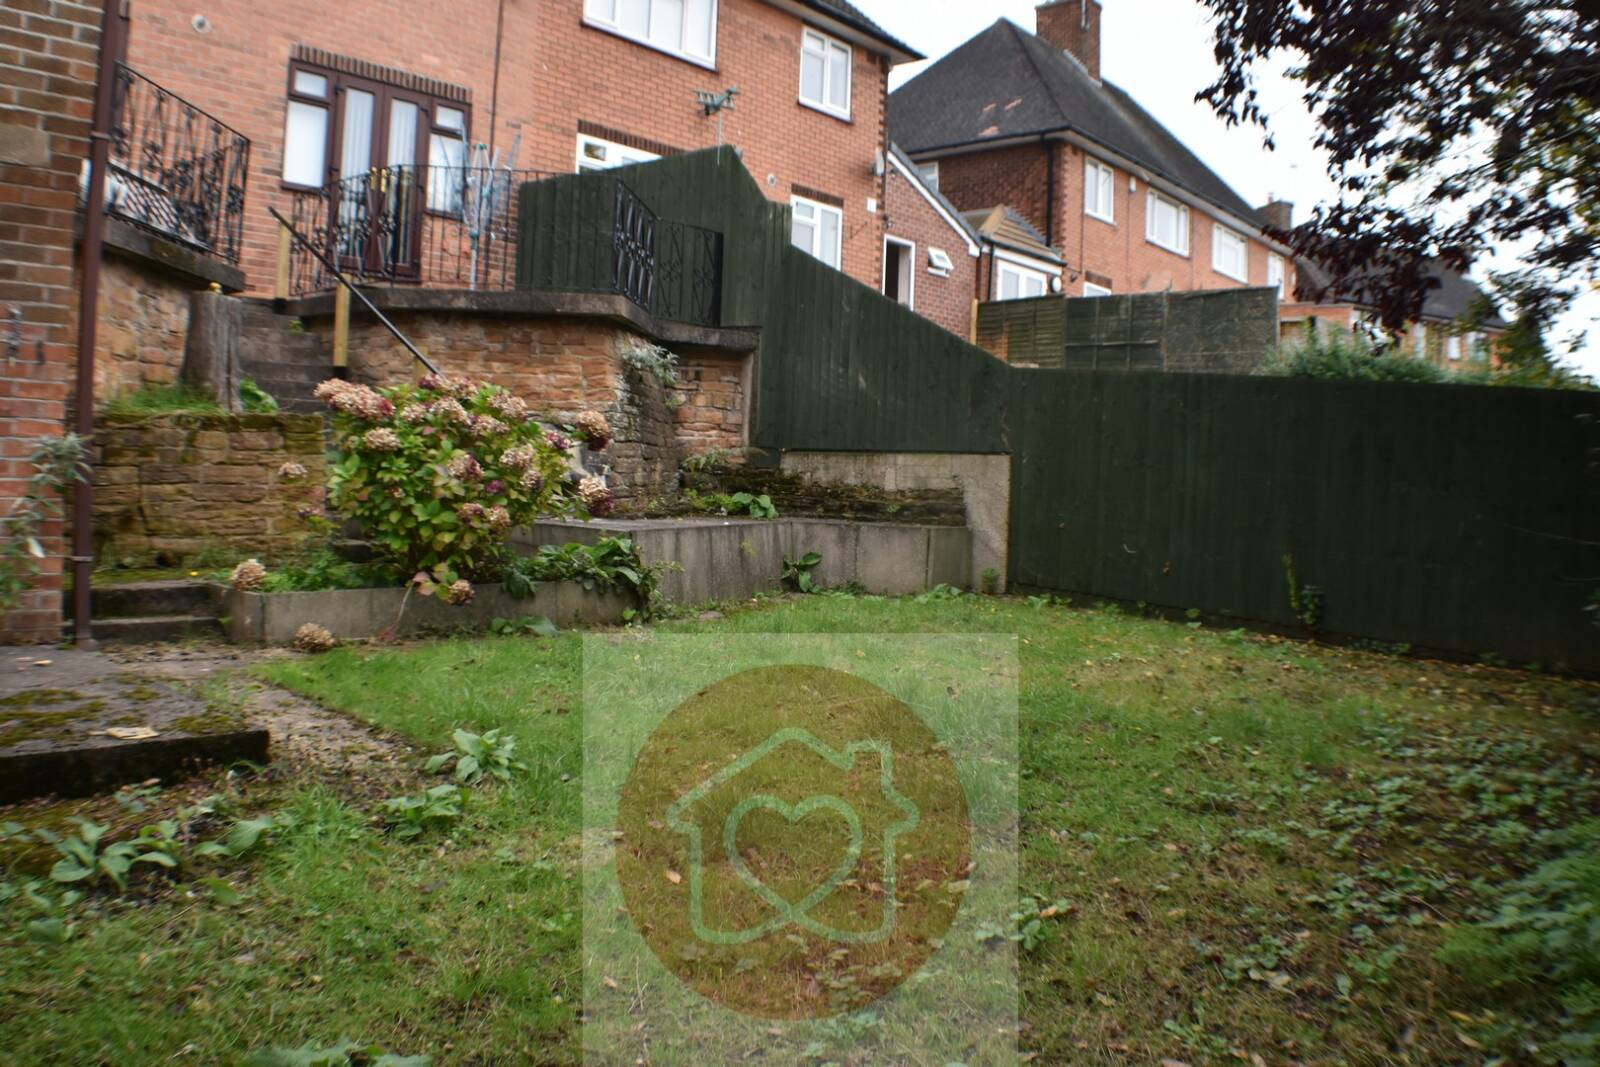 IDEAL FAMILY HOME 3 bedrooms. 2 very large doubles. 2 reception rooms. Large utility/office/workshop with loft. Extended to incorporate: Heated Garage / workshop space. Storage / garden room with French doors at garden level.FGCH. Raised patio. Grassed garden area. Easy to maintain.